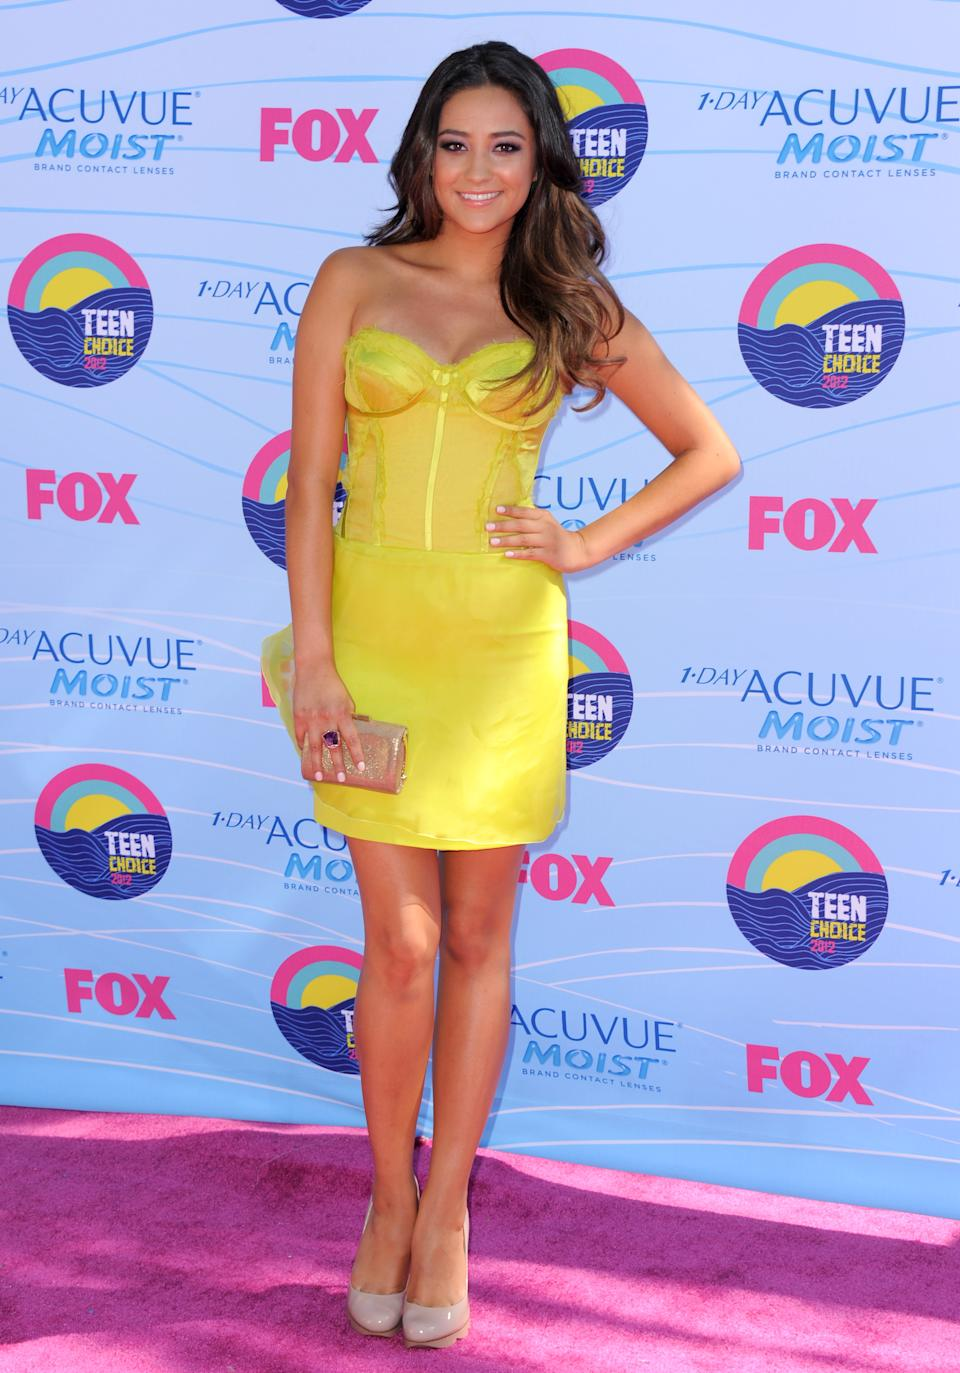 Shay Mitchell arrives at the Teen Choice Awards on Sunday, July 22, 2012, in Universal City, Calif. (Photo by Jordan Strauss/Invision/AP)